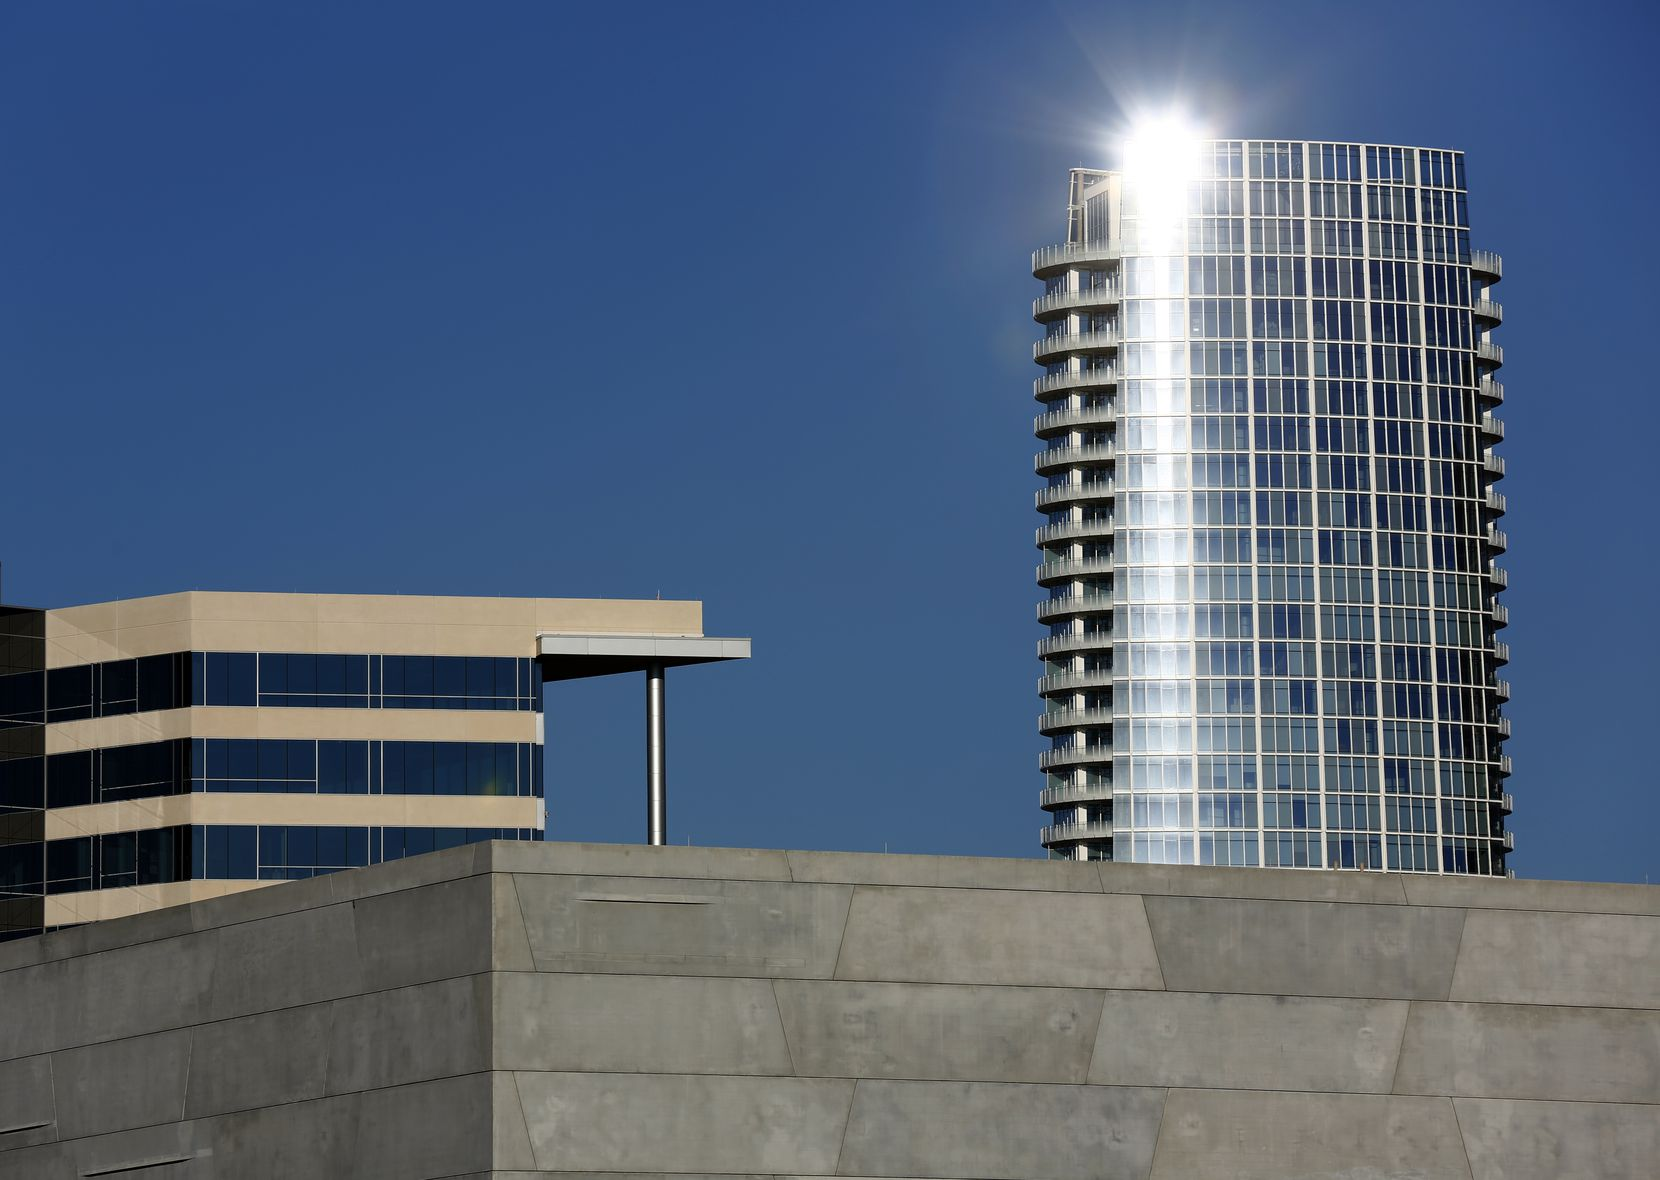 Museum Tower's obtrusive glare is a civic embarrassment.